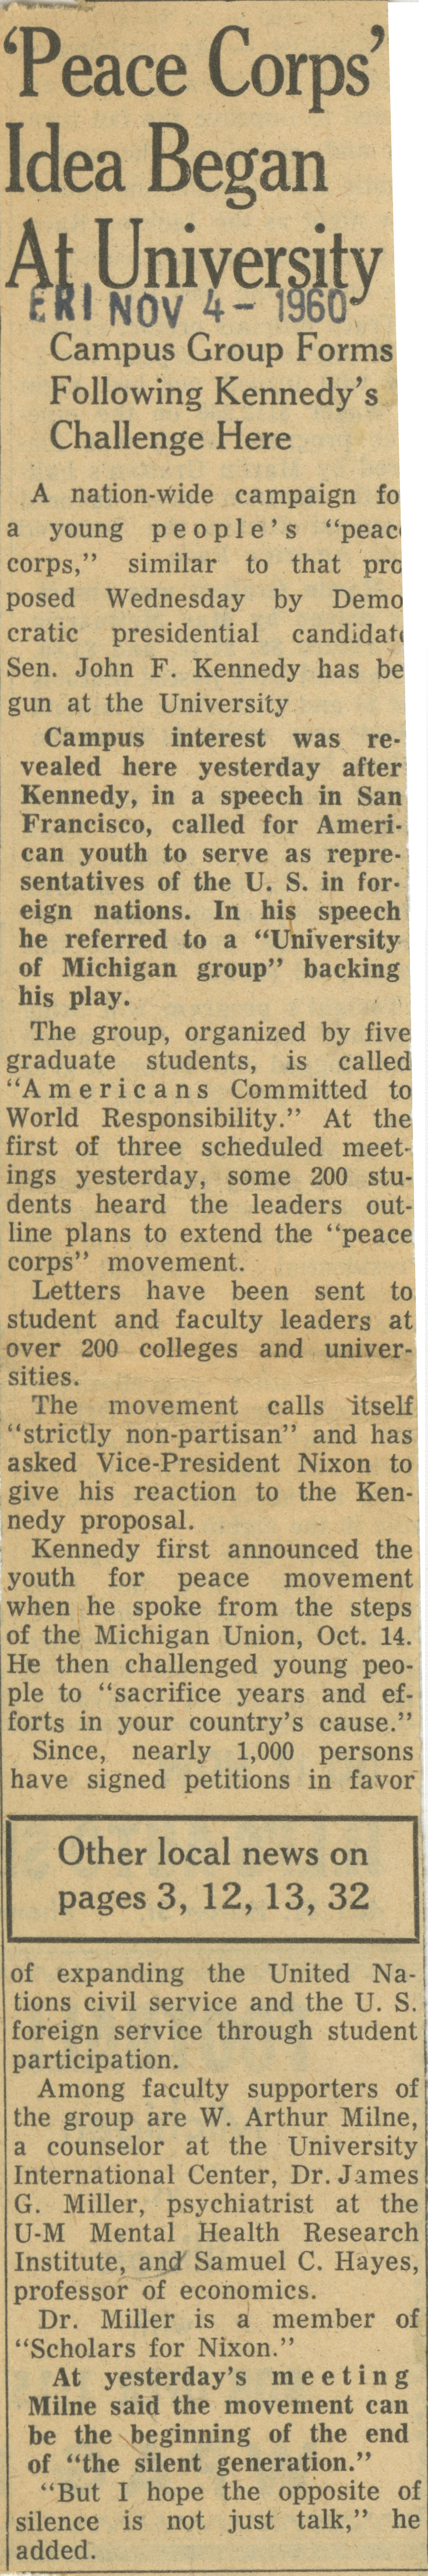 'Peace Corps' Idea Began At University image